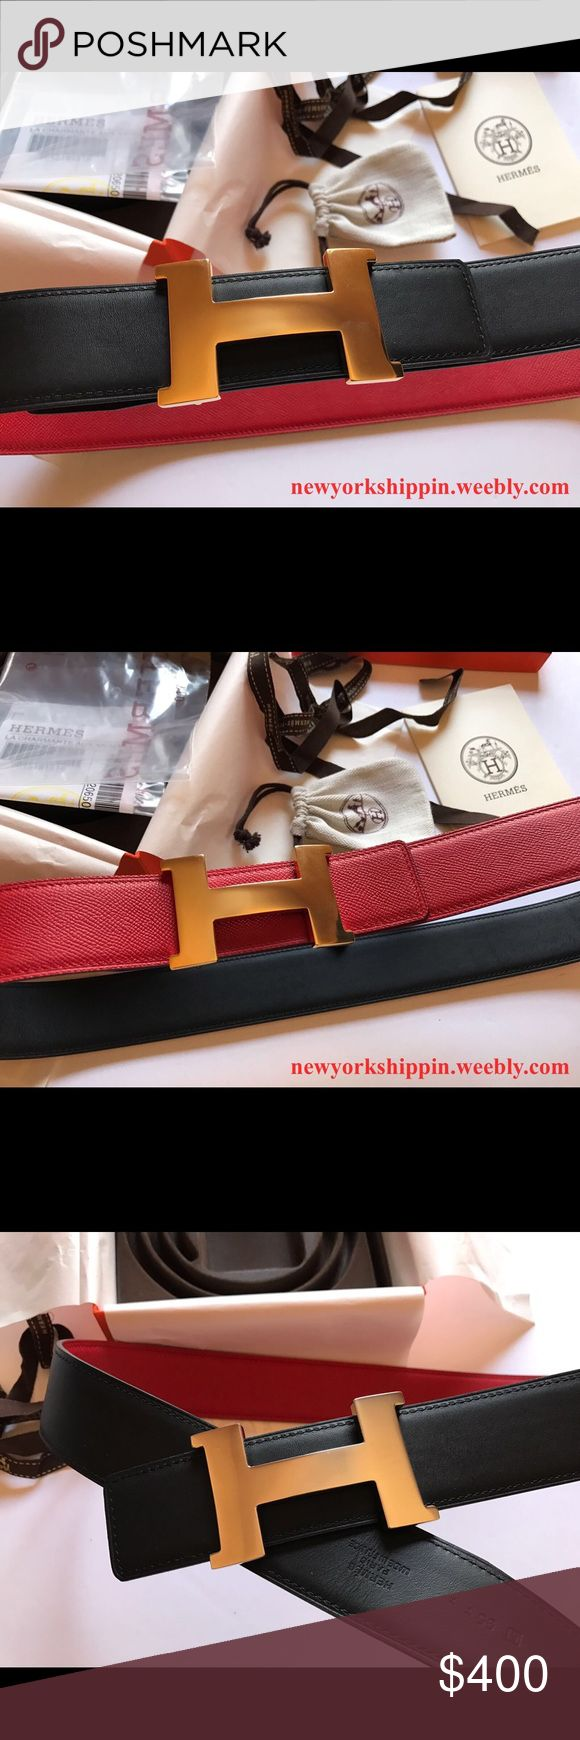 Red/black reversible Hermes belt Red/black reversible Hermes belt with gold or silver buckle. Visit website to purchase for $119.99 including priority shipping with tracking number. Delivery time 1-3 days. Comes with original box, dust bag and all accessories. Shop with confidence. 100% satisfaction guaranteed Hermes Accessories Belts